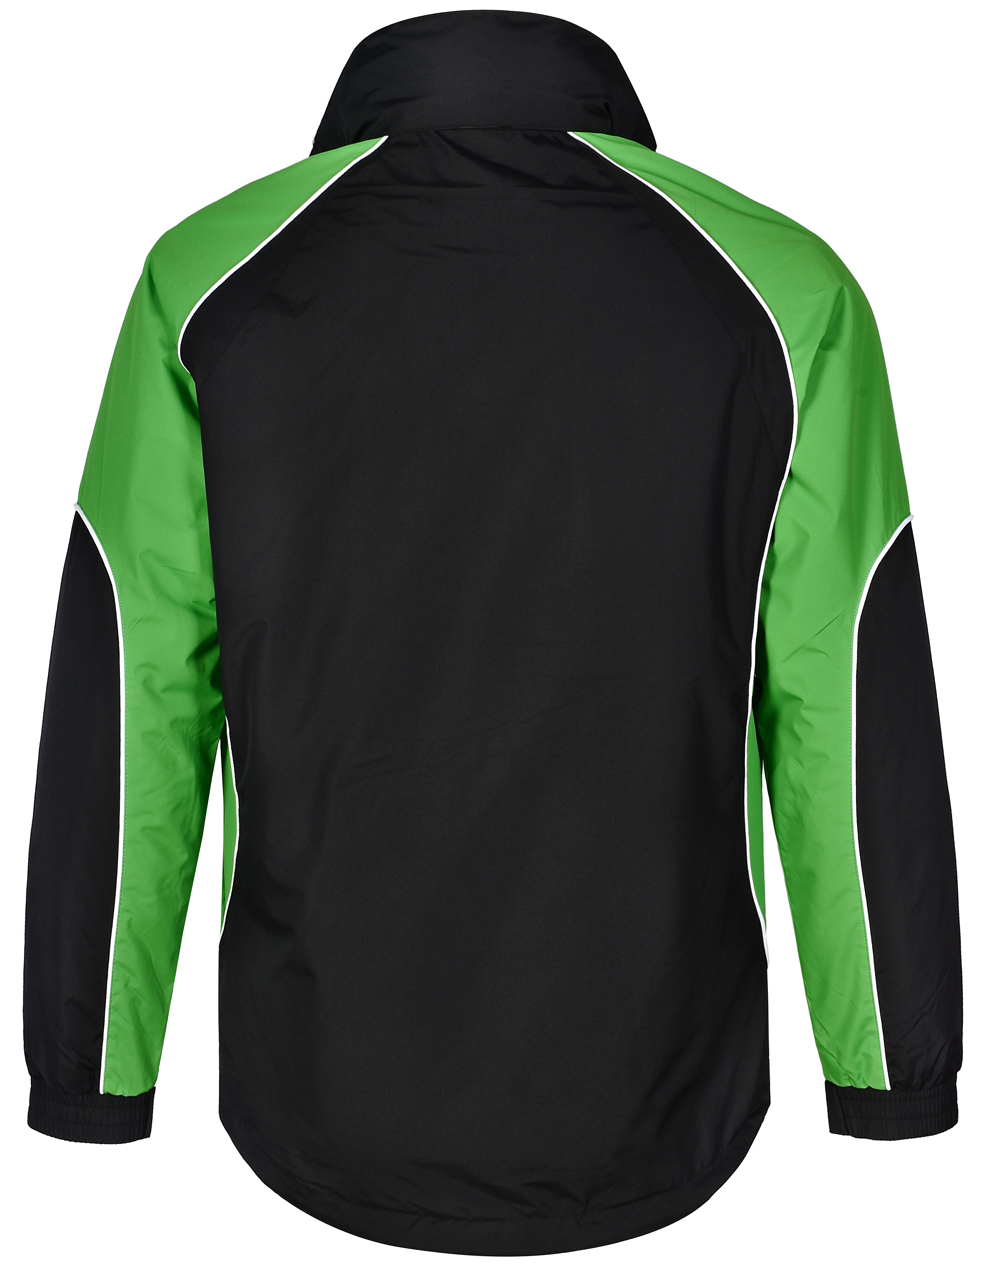 https://s3-ap-southeast-1.amazonaws.com/ws-imgs/OUTWEAR/JK77_Black.White.Green_Back_l.jpg